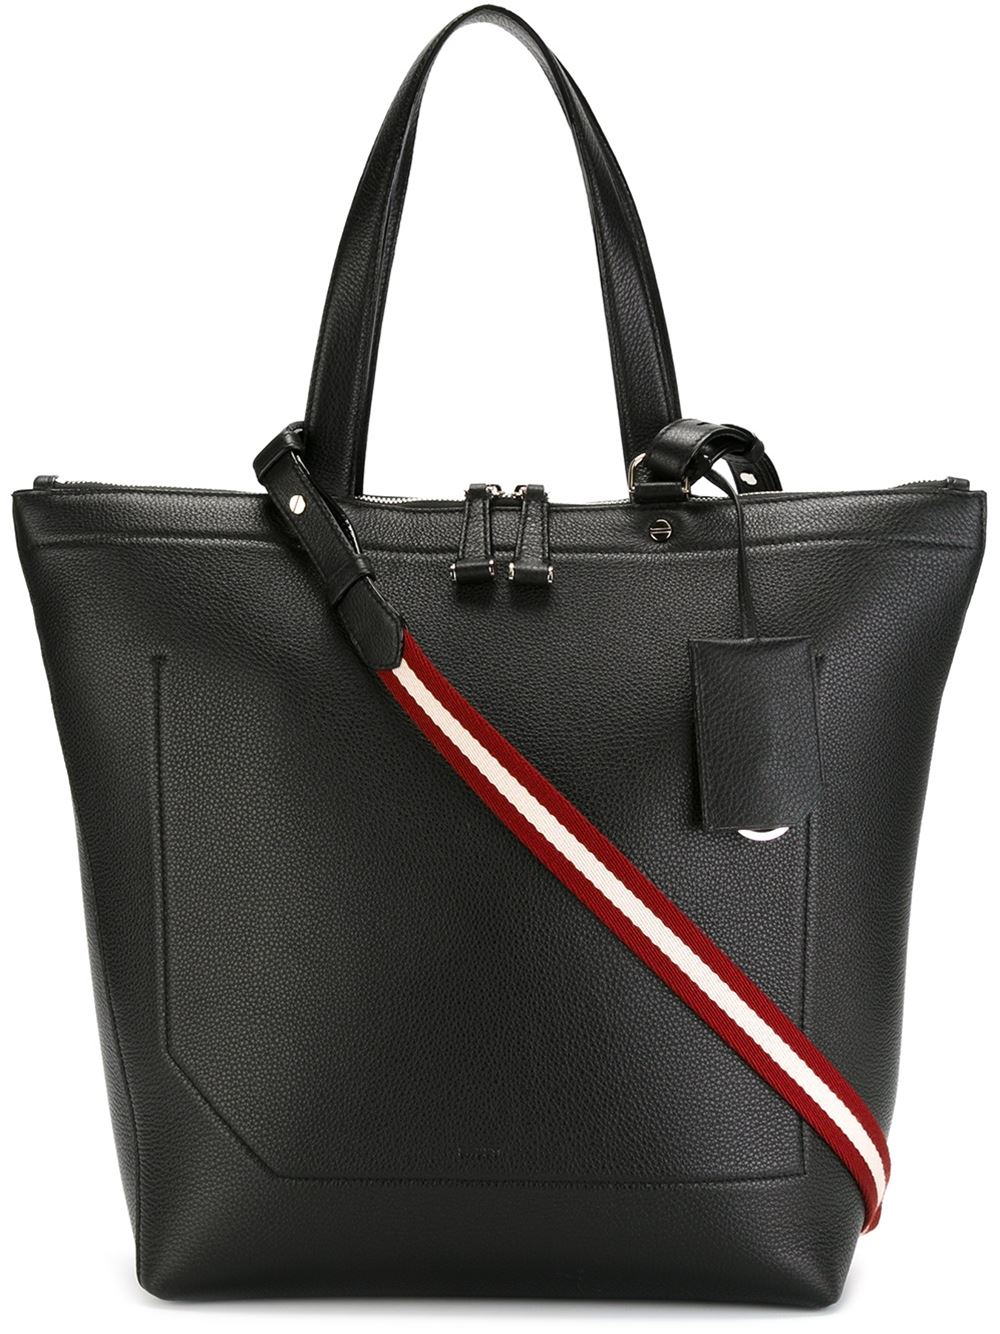 Creative Bally Tote Bags Handbag Woman In Red  Lyst